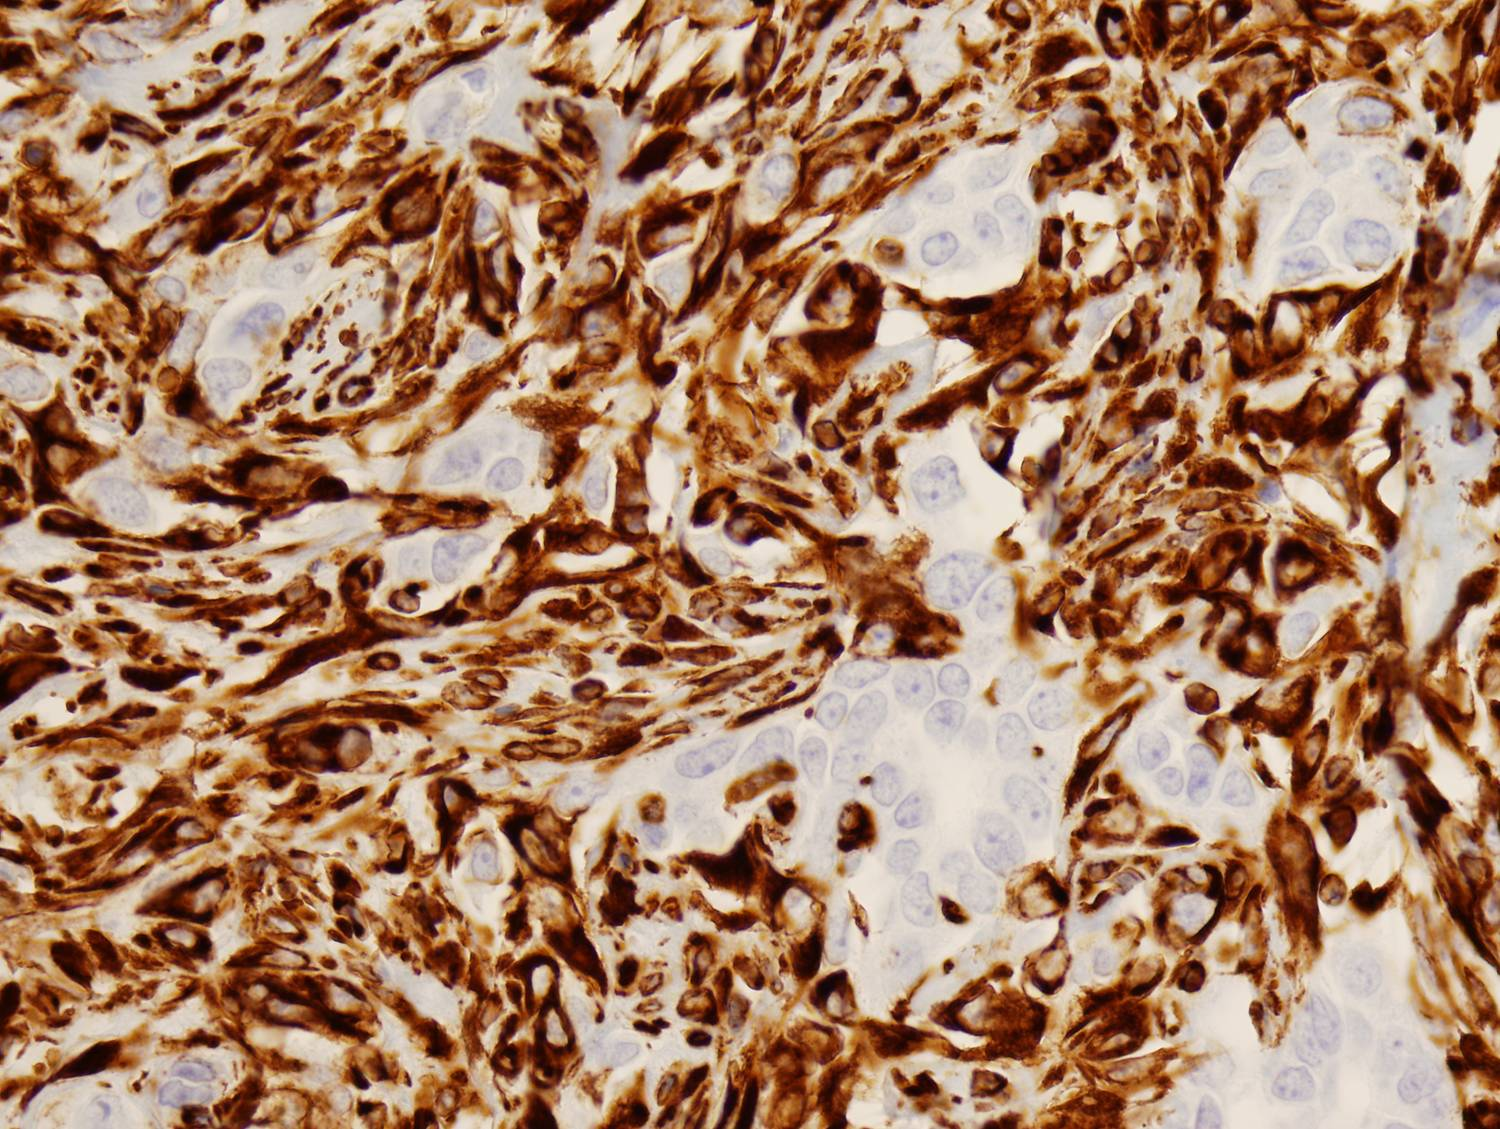 COTM Jan2010 Immunohistochemical Stains: Vimentin